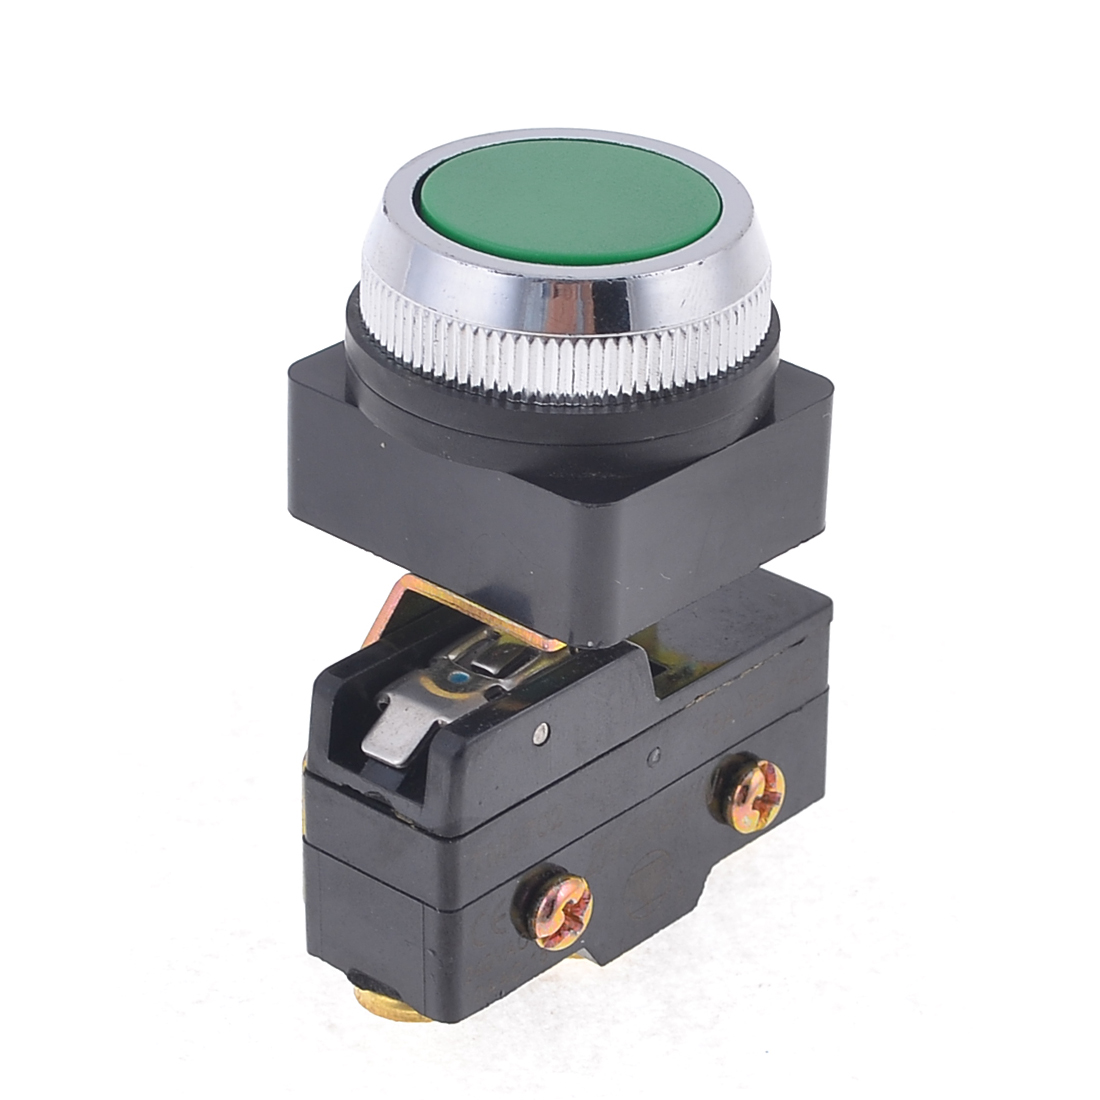 30mm Thread Green Pushbutton Momentary Micro Switch 15A/250VAC 1NO 1NC